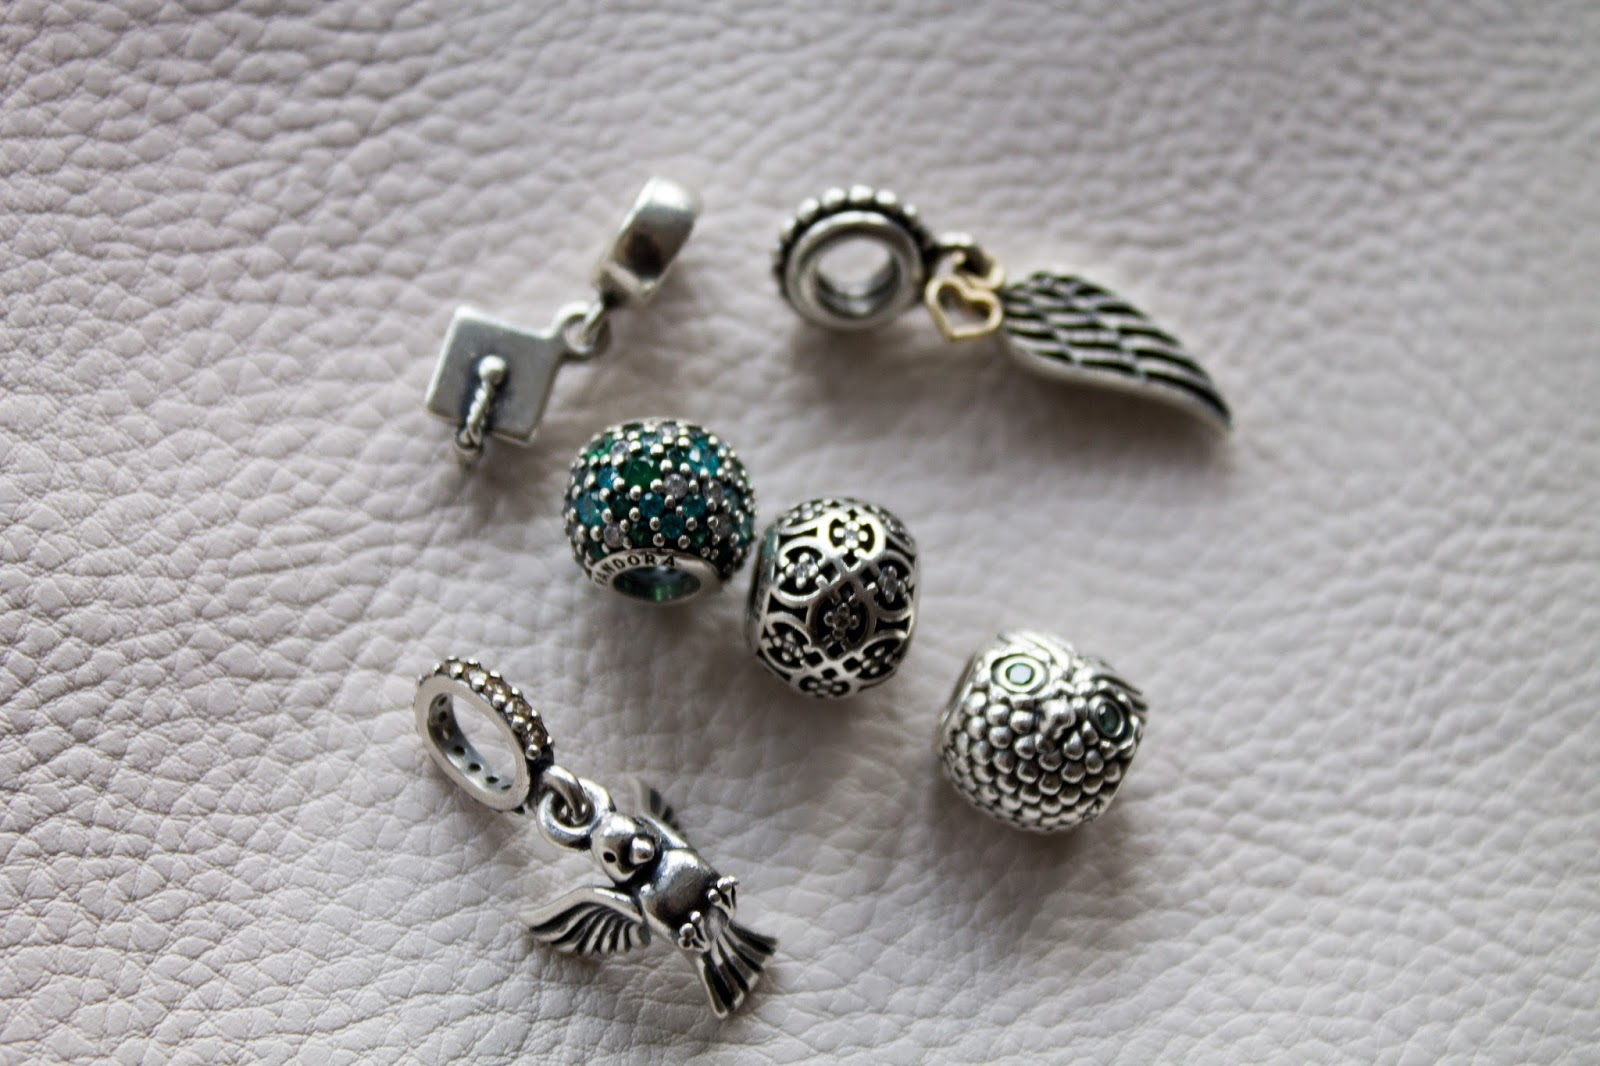 Pandora bracelet, charms and similar - What to expect